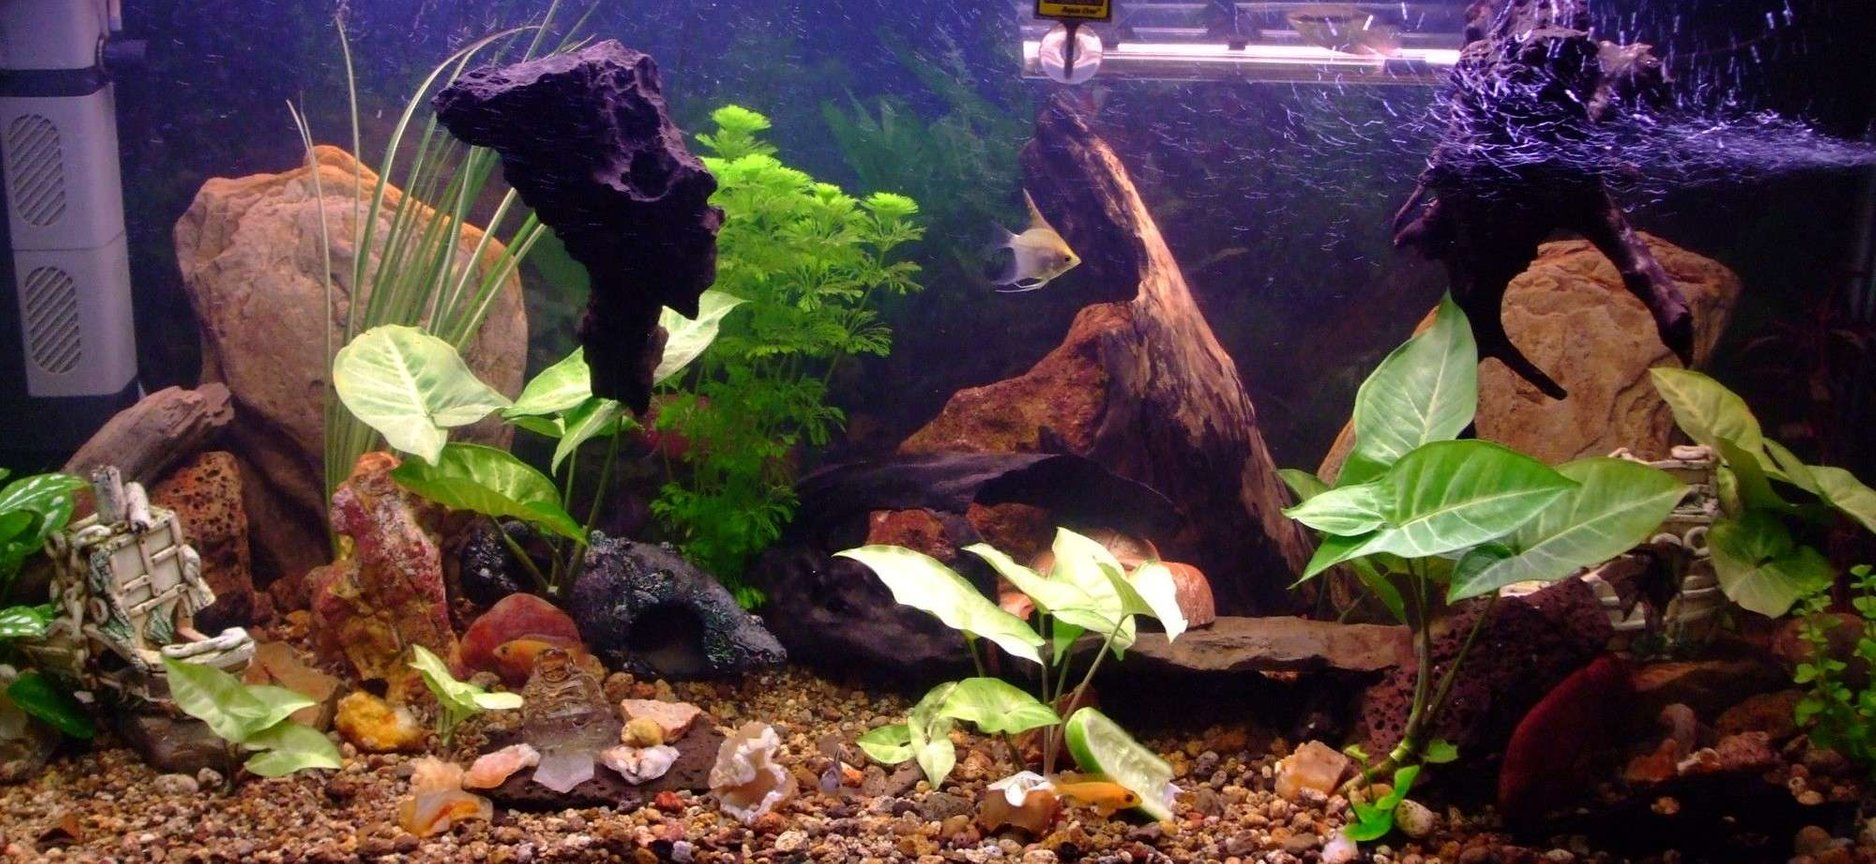 90 gallons freshwater fish tank (mostly fish and non-living decorations) - recently rearranged and a few more plants, with a variety of cichlids including 2 rainbow chichlid's, 4 bristle nose pleco's, 1 pictus catfish, 3 khuli loaches, 1 convict, 1 firemouth, 1 flameback, 3 bolivian butterfly's, 2 red forest jewel's, 1 electric yellow, 1 princess, 2 angel's, 1 sertivum, 2 blood peacocks(not sure about the name), 2 kribensis, clown loach